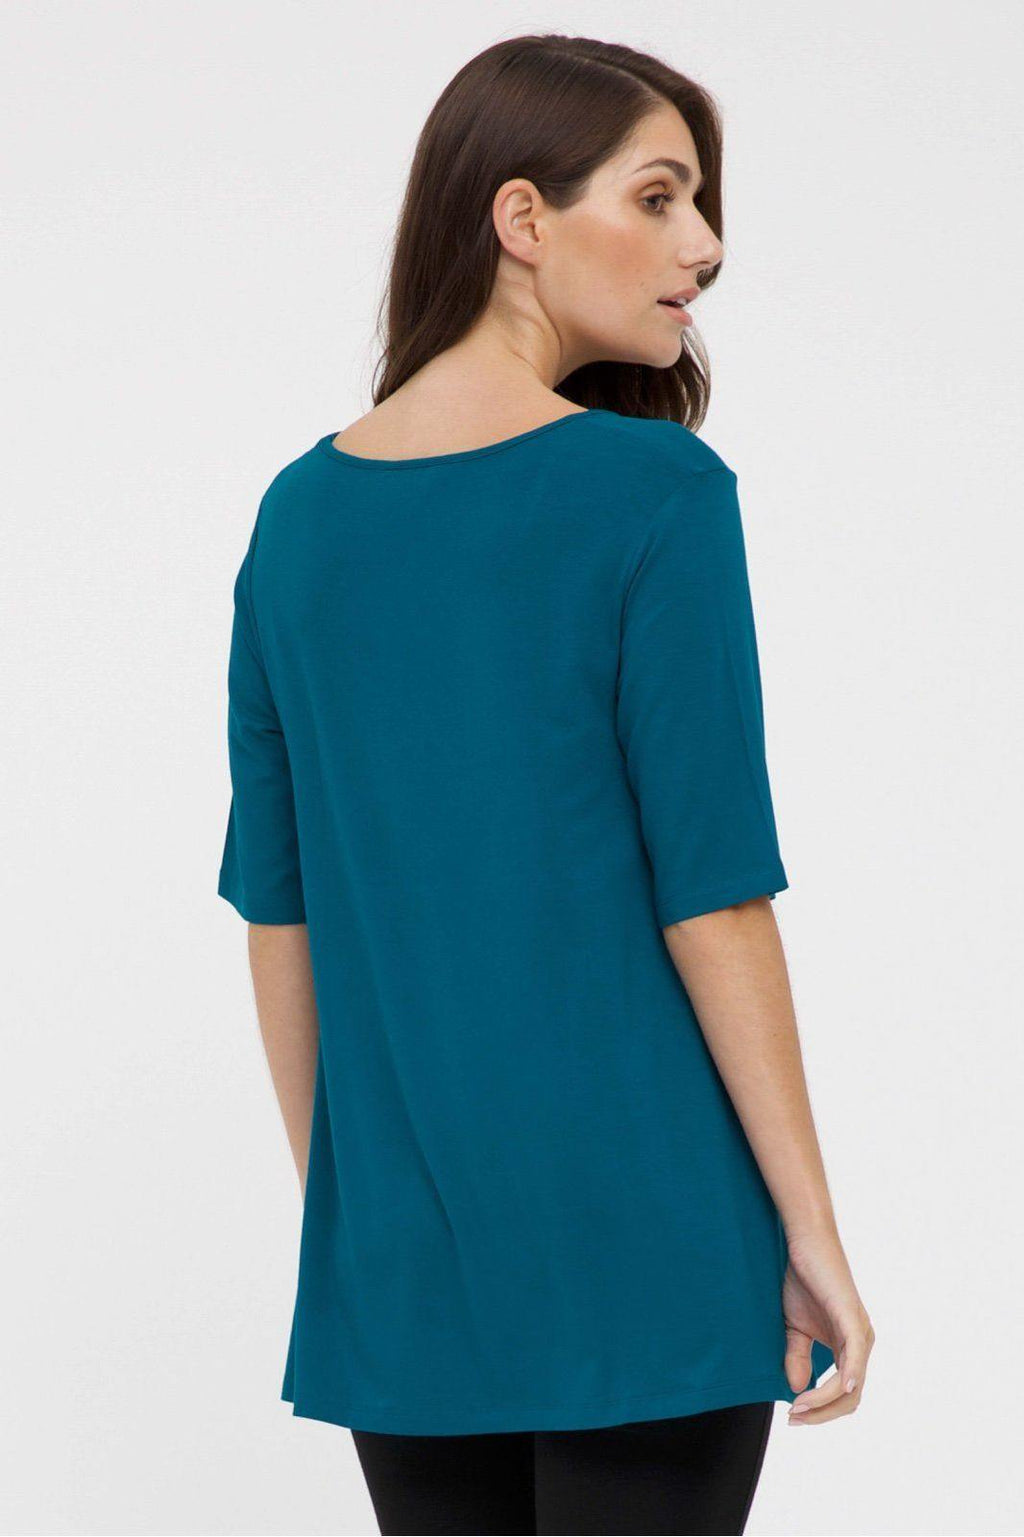 Bamboo Body Carter Tunic Top - Dark Teal | Buy Online at Weekends